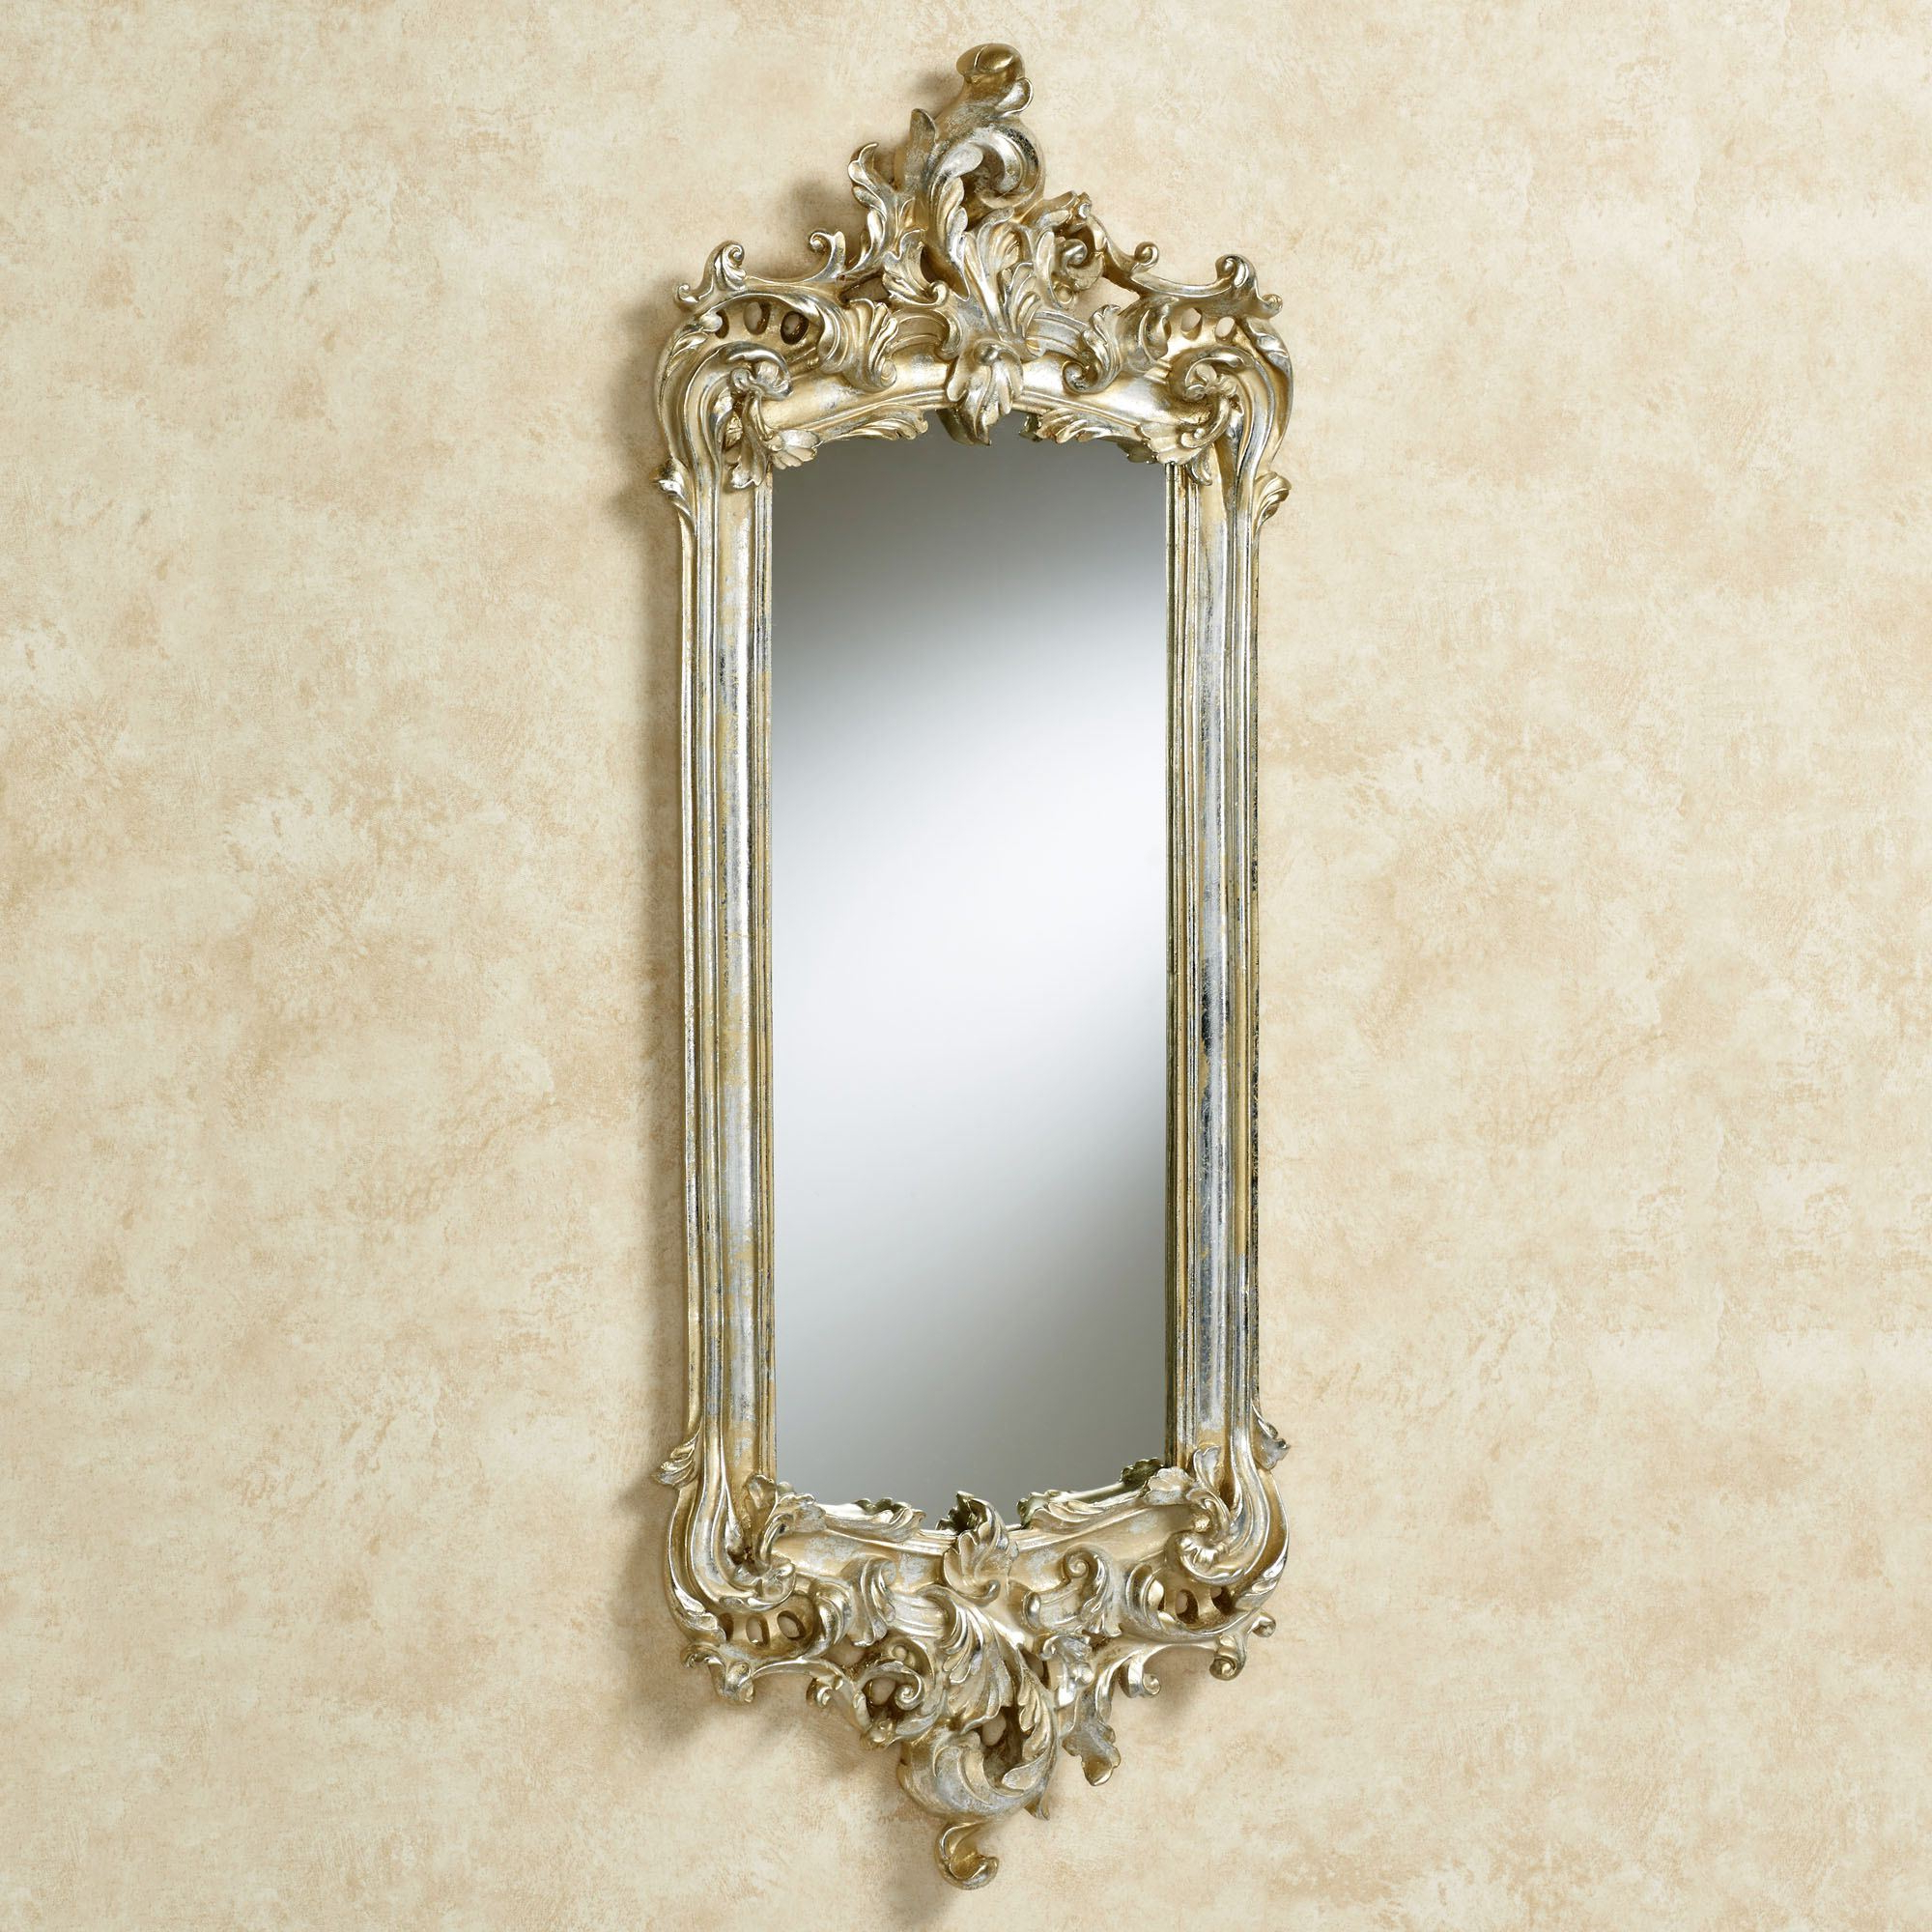 Lela Silver Gold Acanthus Wall Mirror Pertaining To Newest Gold Wall Mirrors (View 14 of 20)